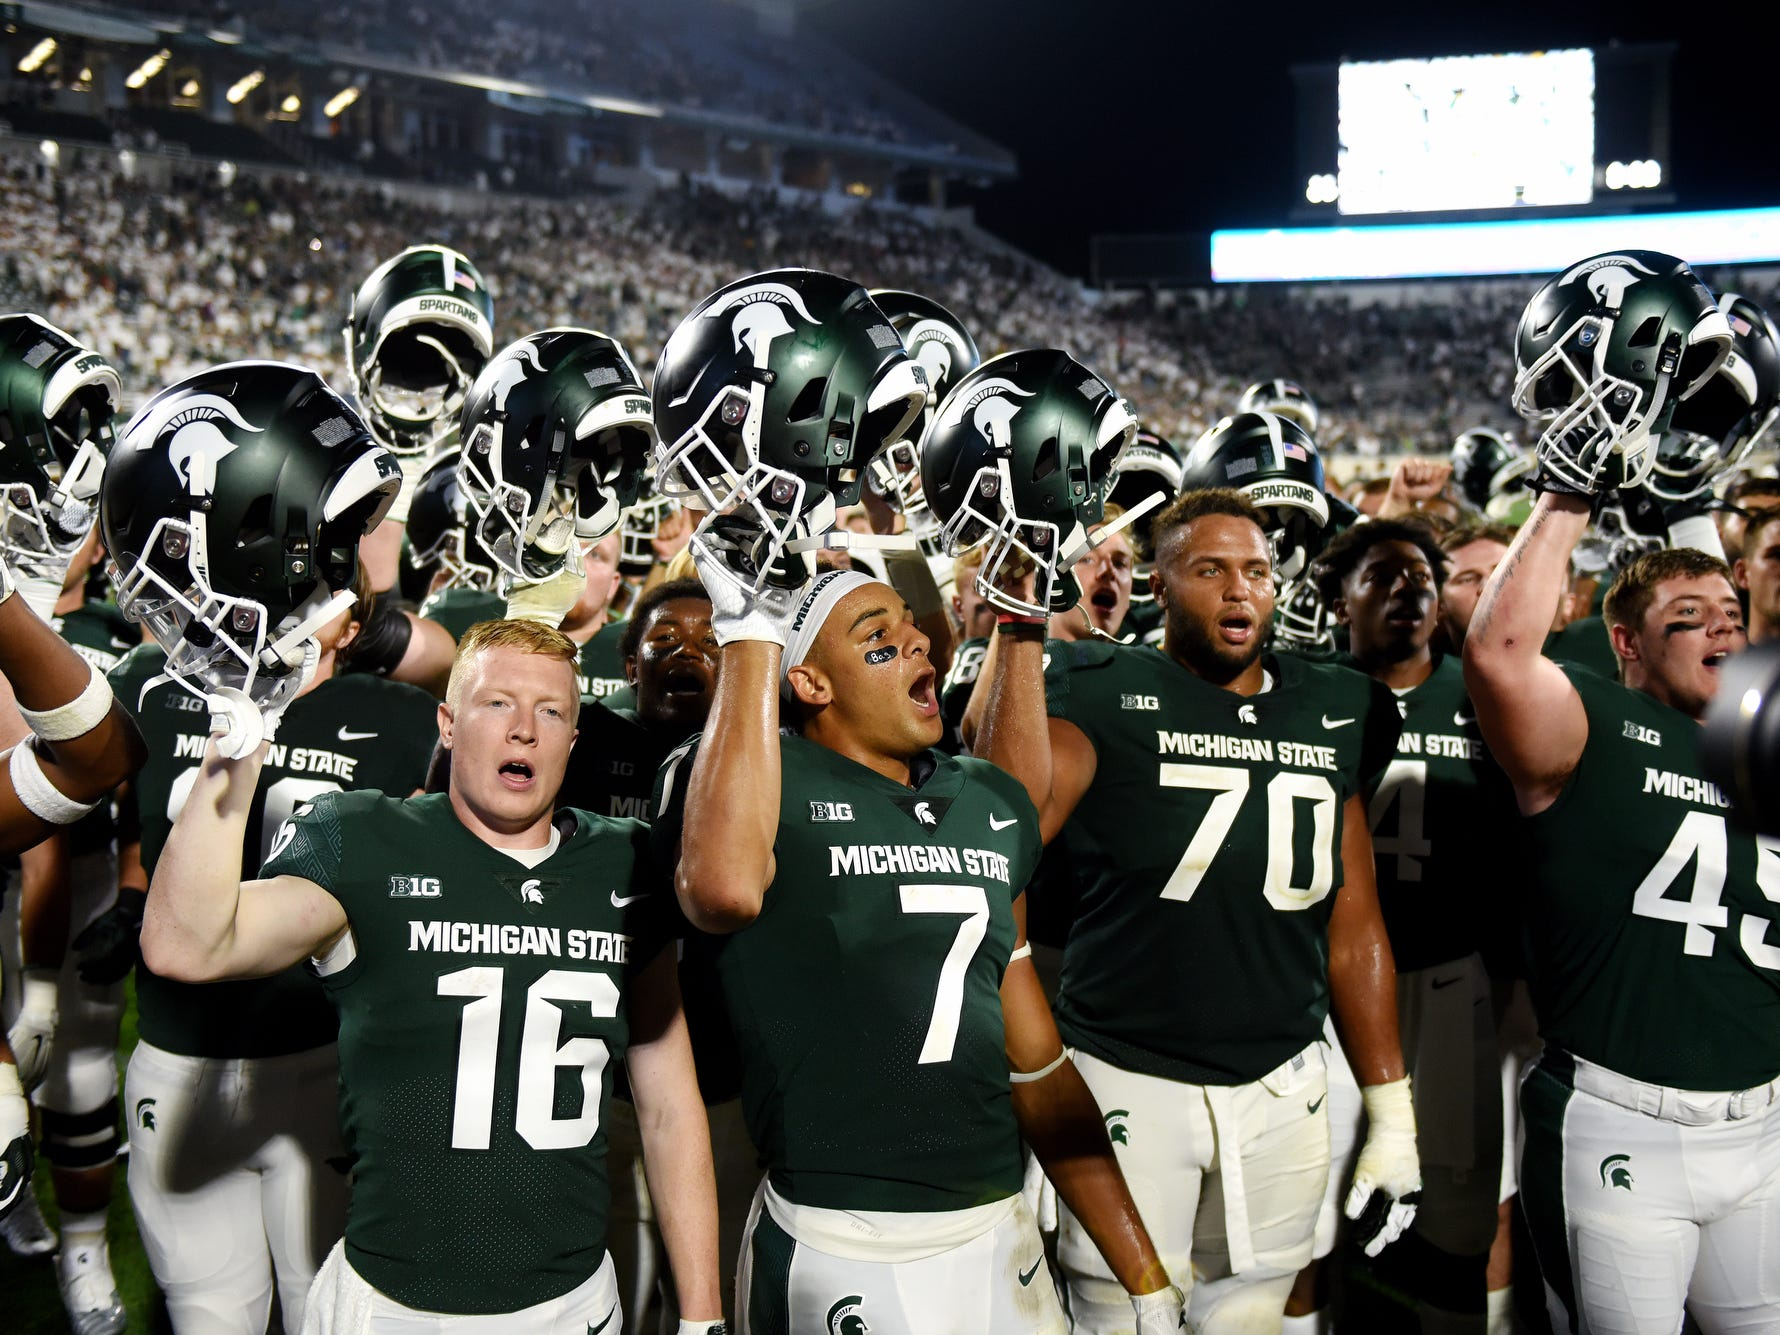 Michigan State sings the fight song after defeating Utah State on Friday, Aug. 31, 2018, at Spartan Stadium in East Lansing.